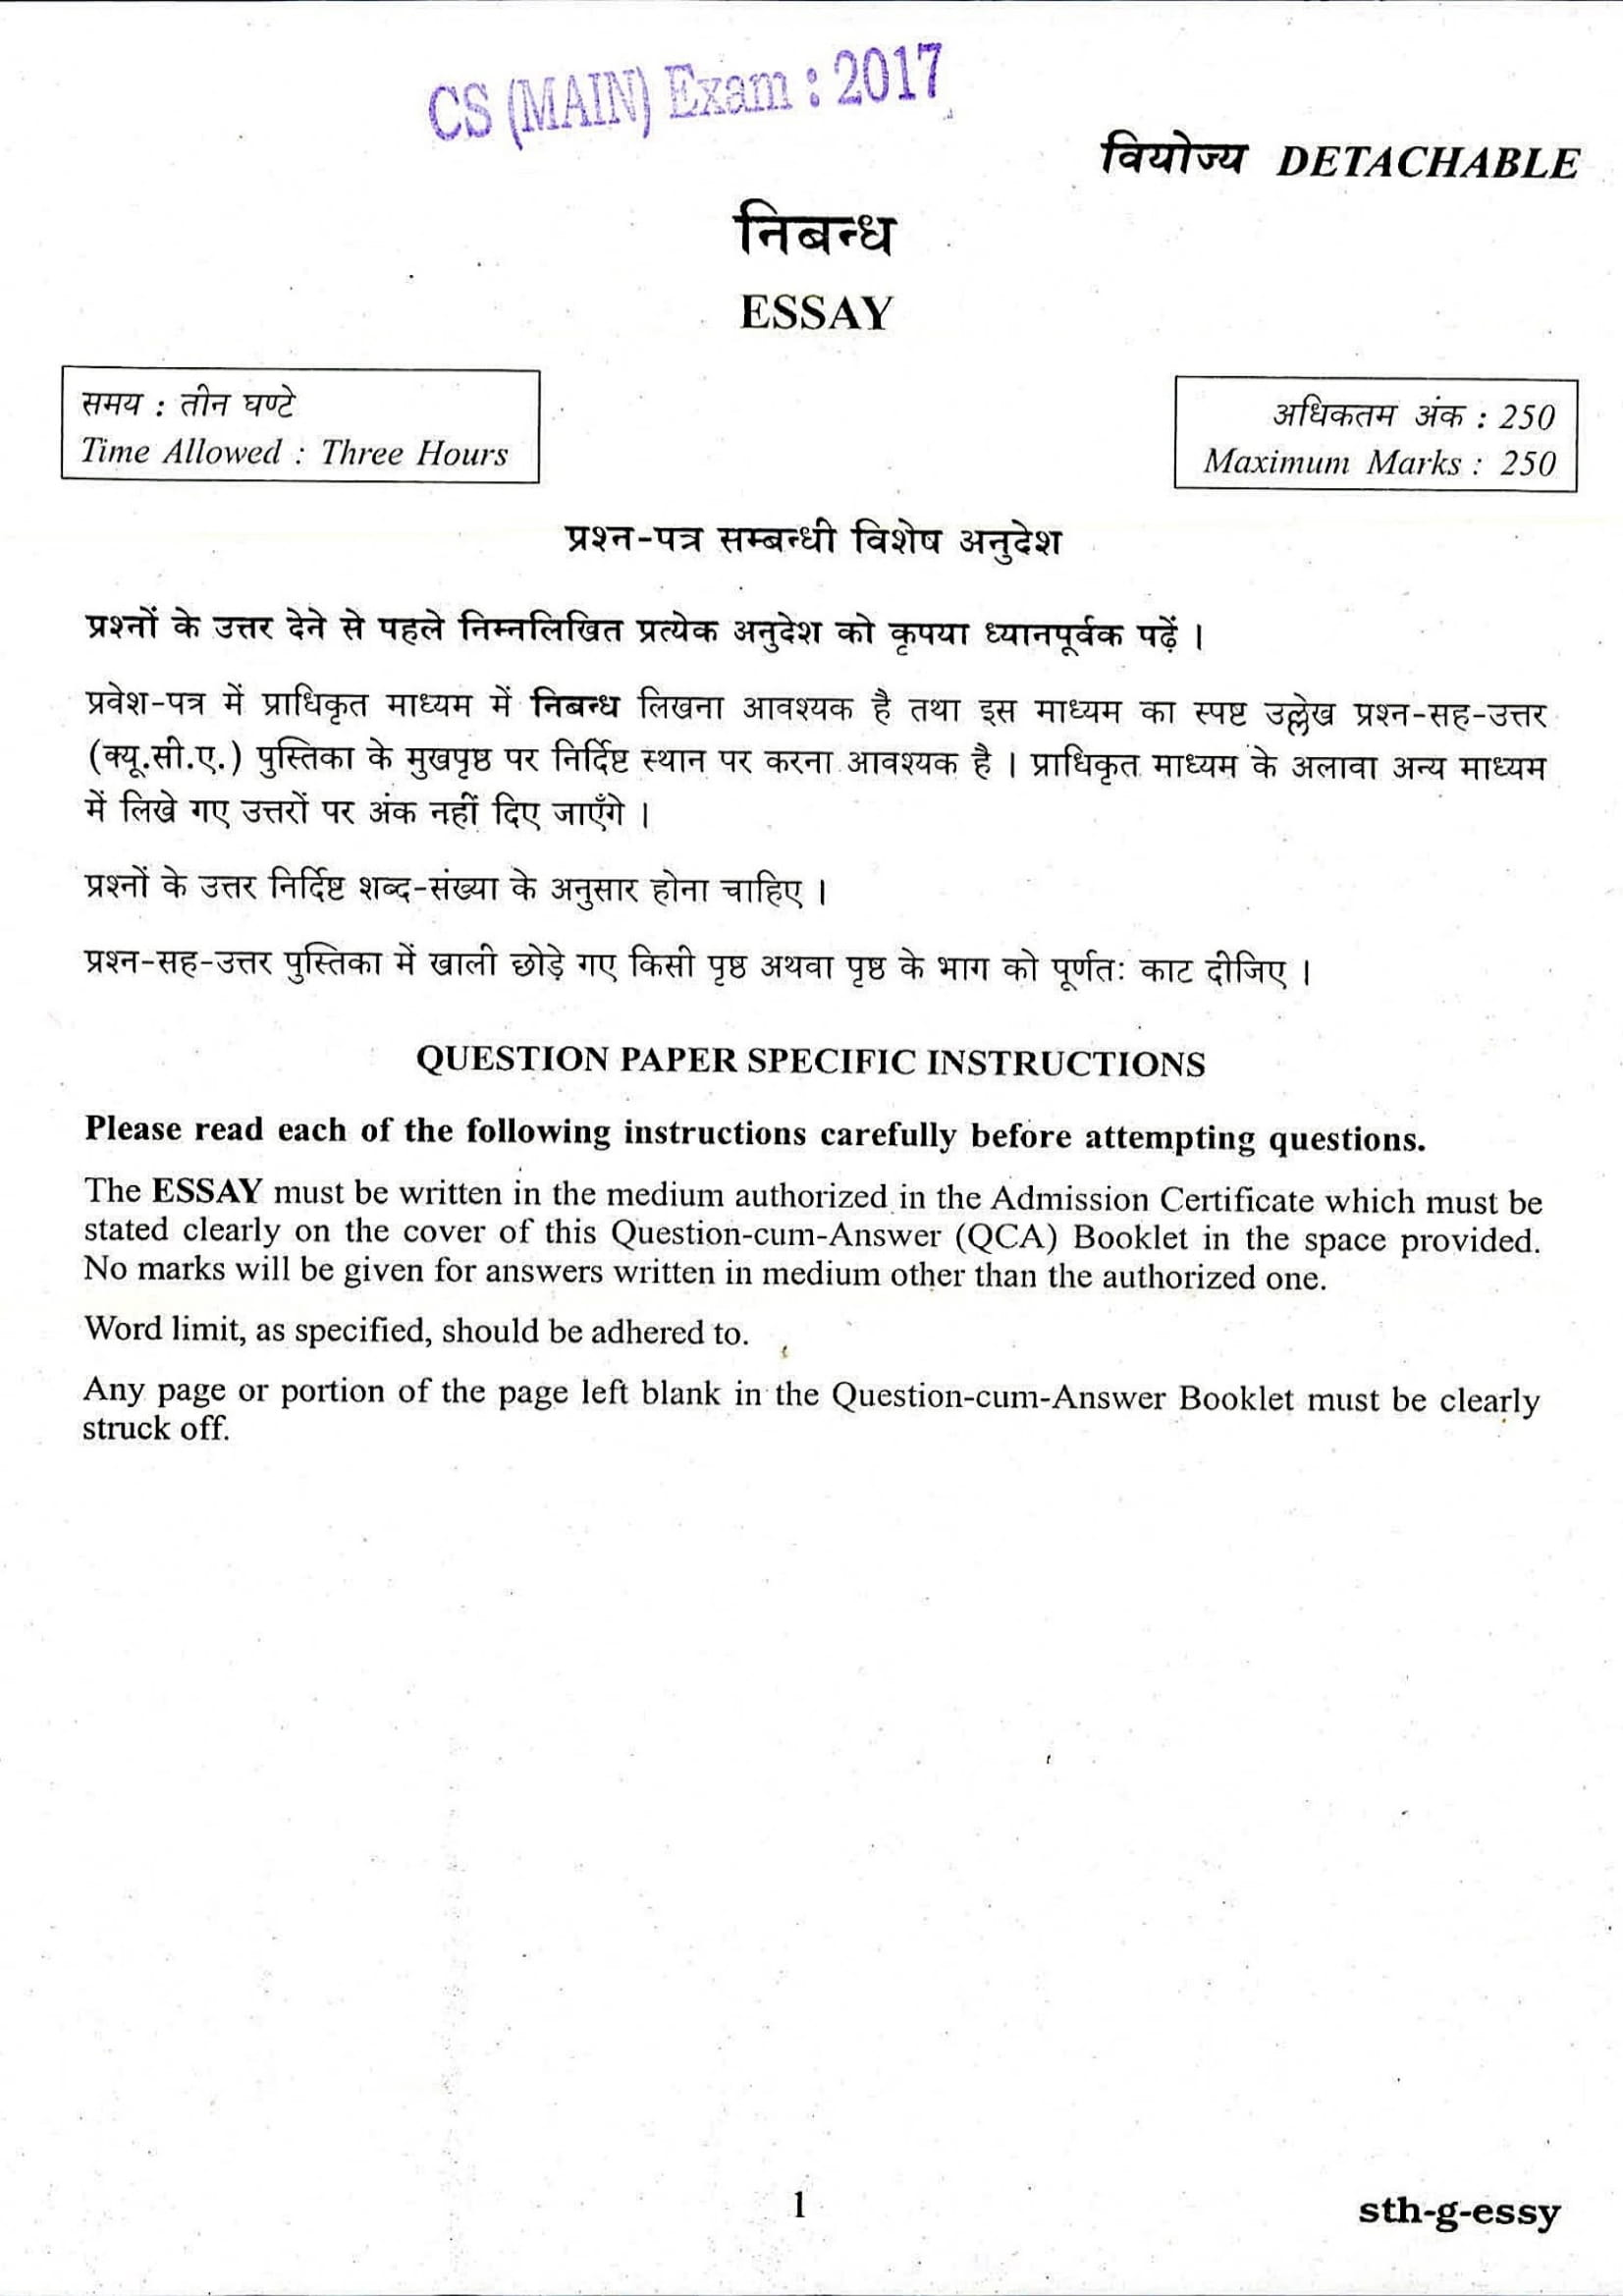 Listing of Essays Inquired within City Expert services Mains